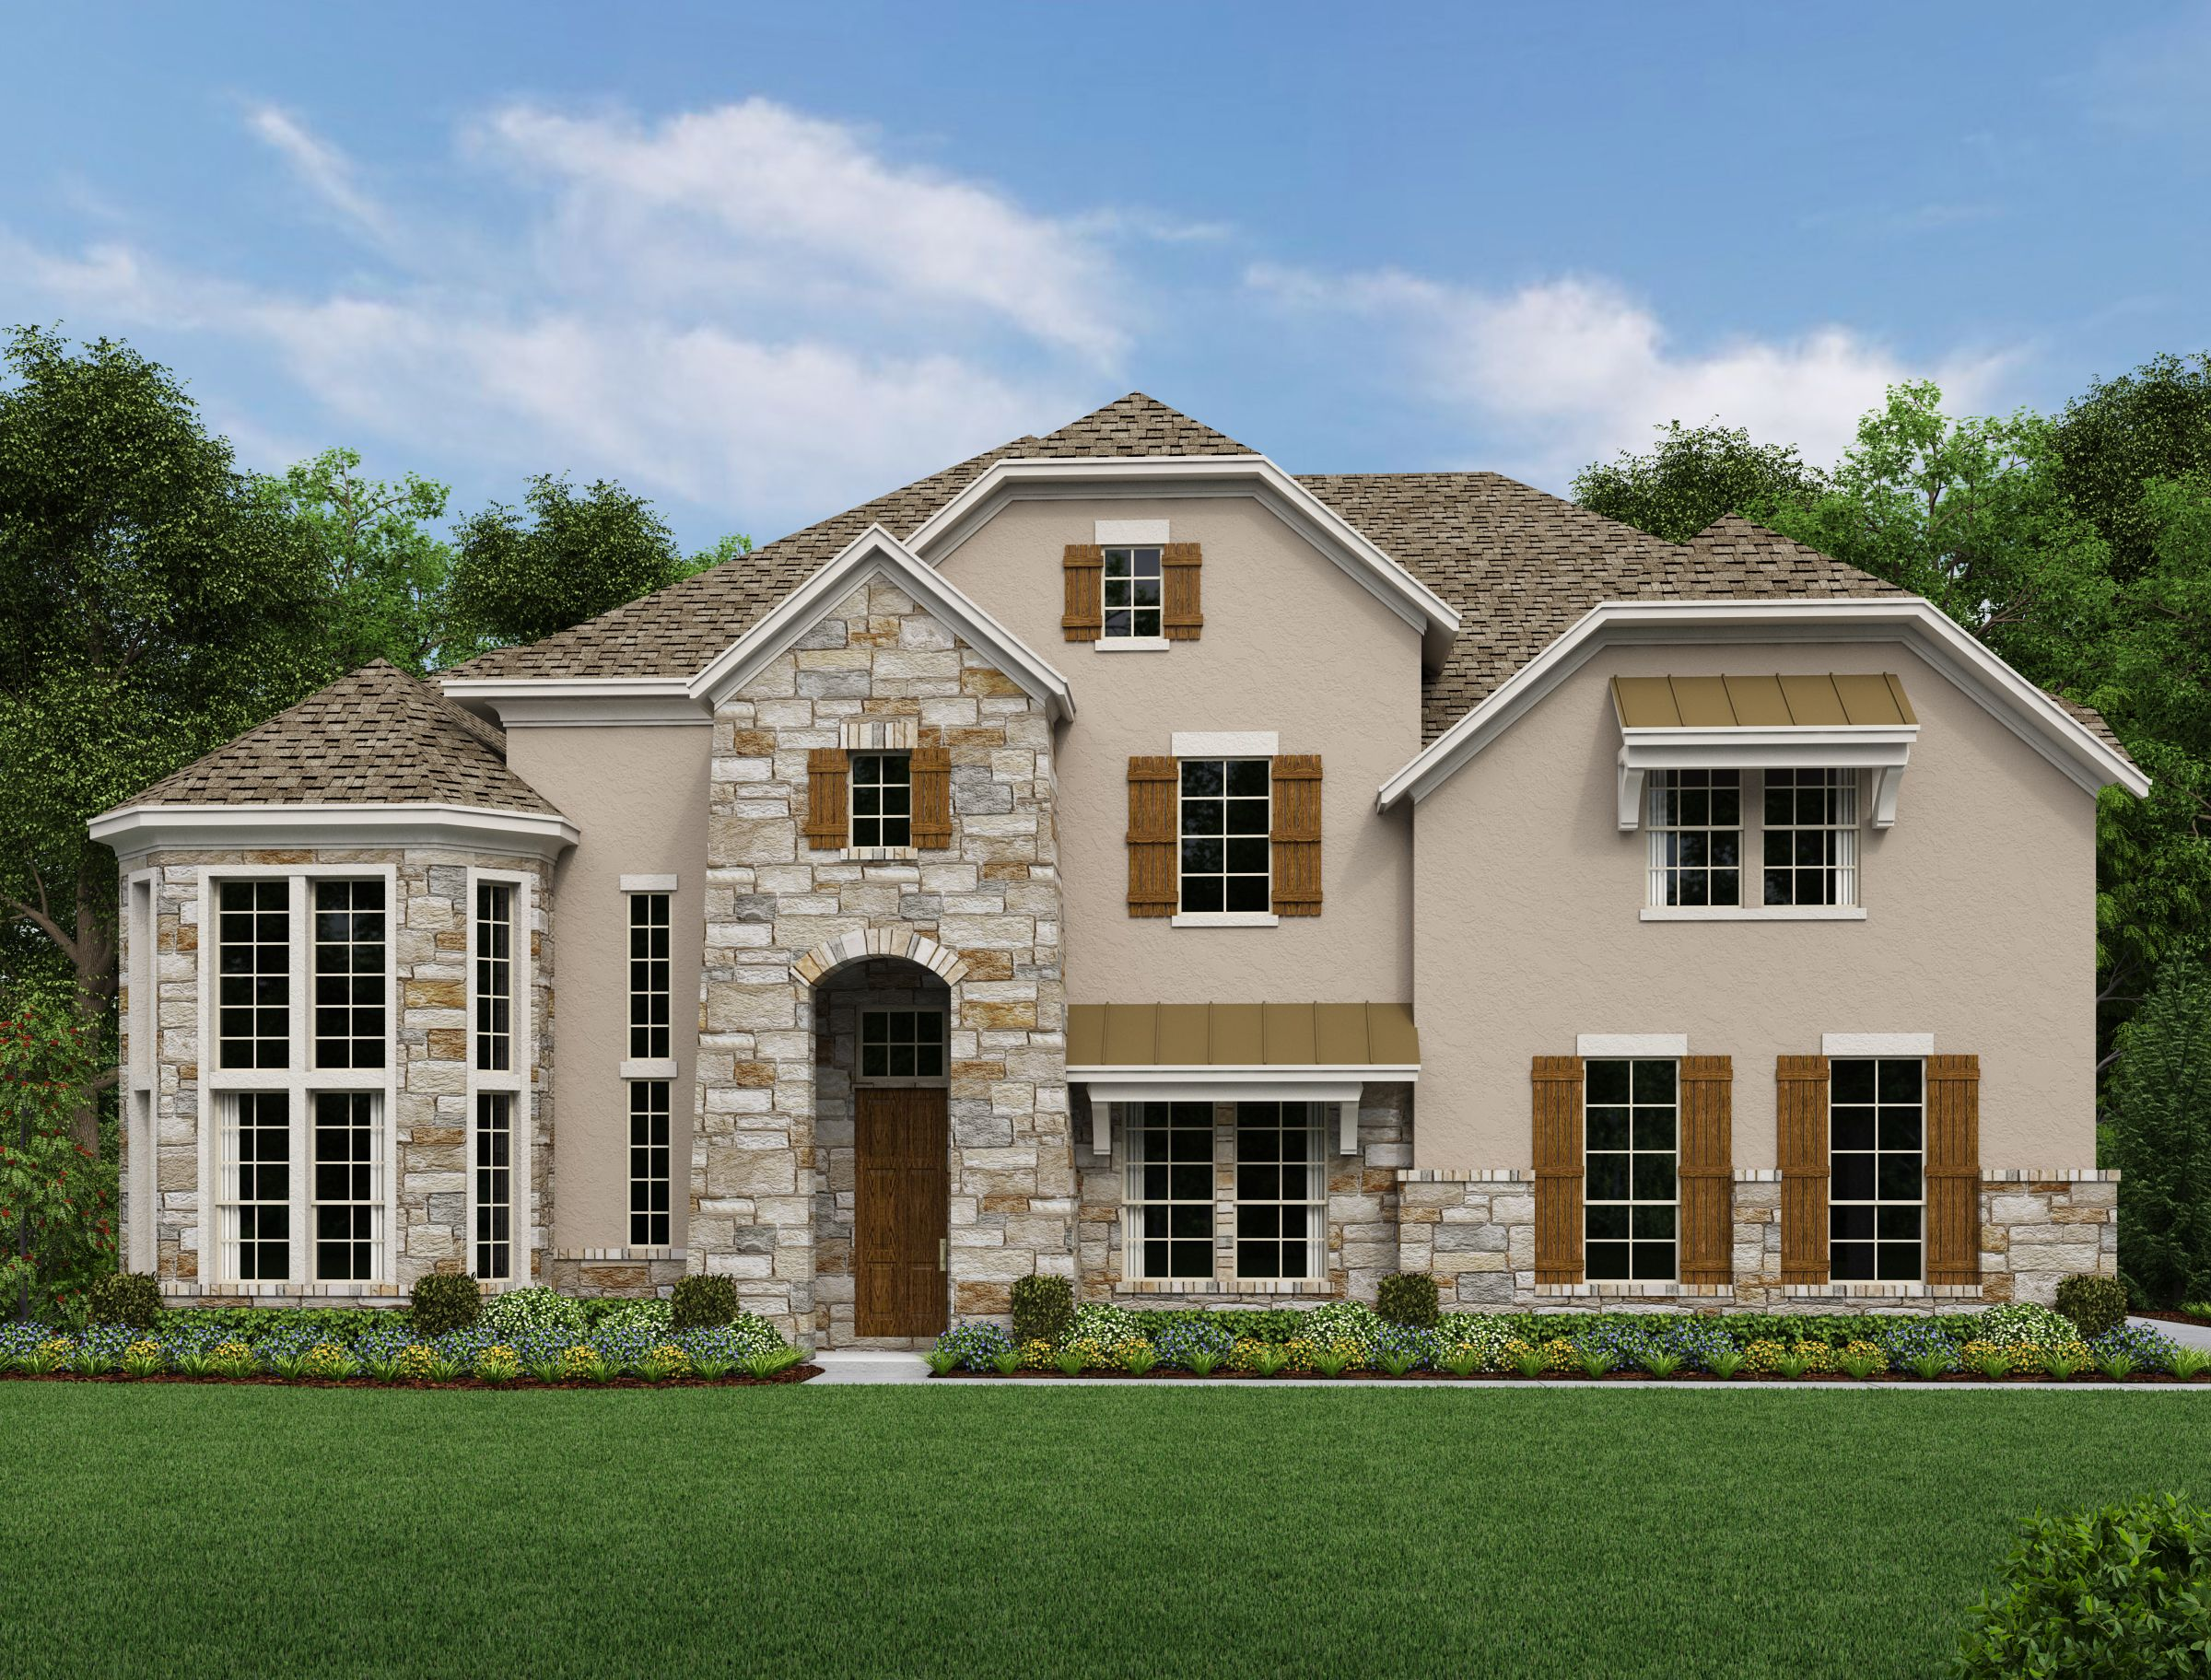 Single Family for Sale at Vistancia - Bellagio 18101 Vistancia Drive Dripping Springs, Texas 78620 United States